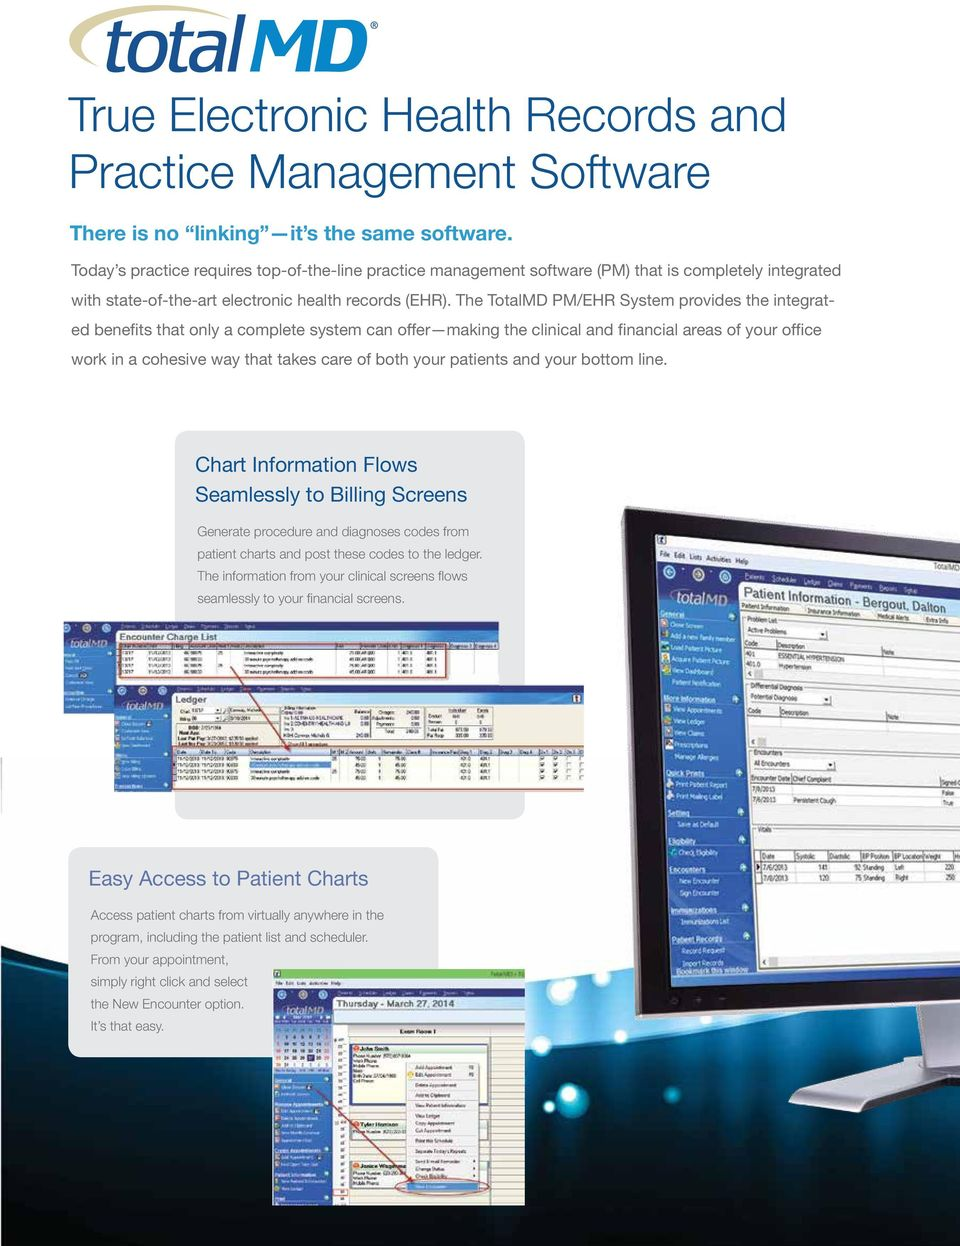 The TotalMD PM/EHR System provides the integrated benefits that only a complete system can offer making the clinical and financial areas of your office work in a cohesive way that takes care of both